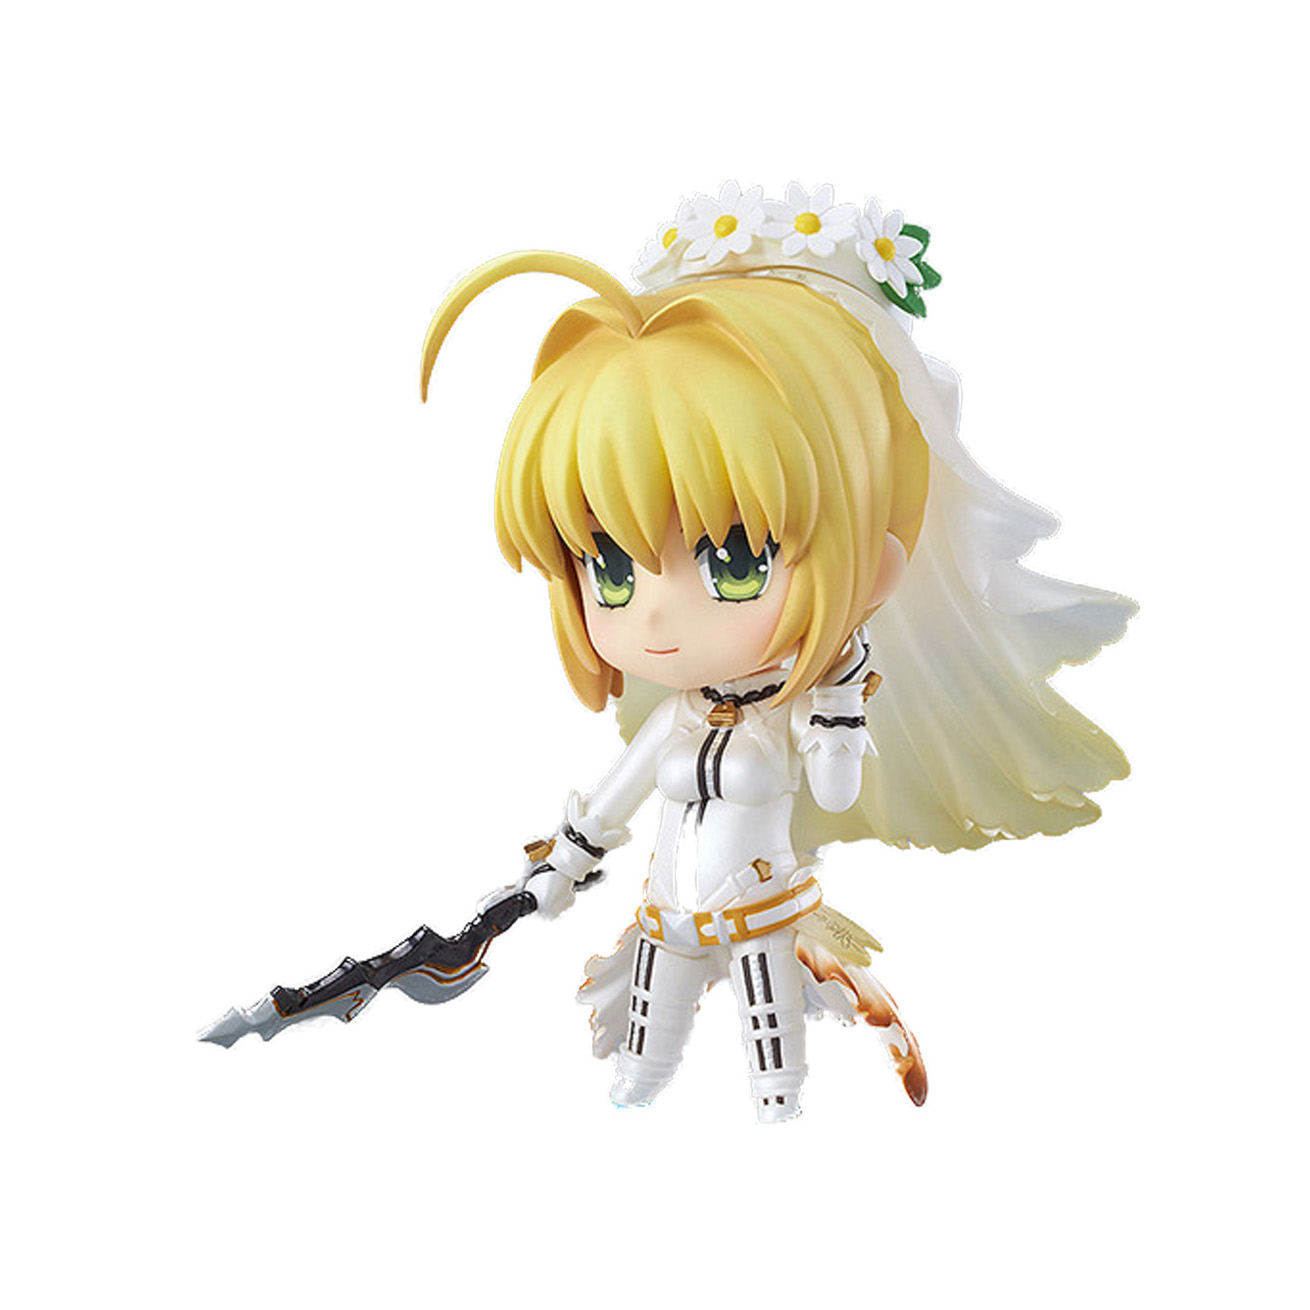 Chanycore GSC Nendoroid 387# Fate Stay Night Saber Bride Wedding dress PVC FATE/ZERO Anime Action Figure Collection Toy 10cm 4''